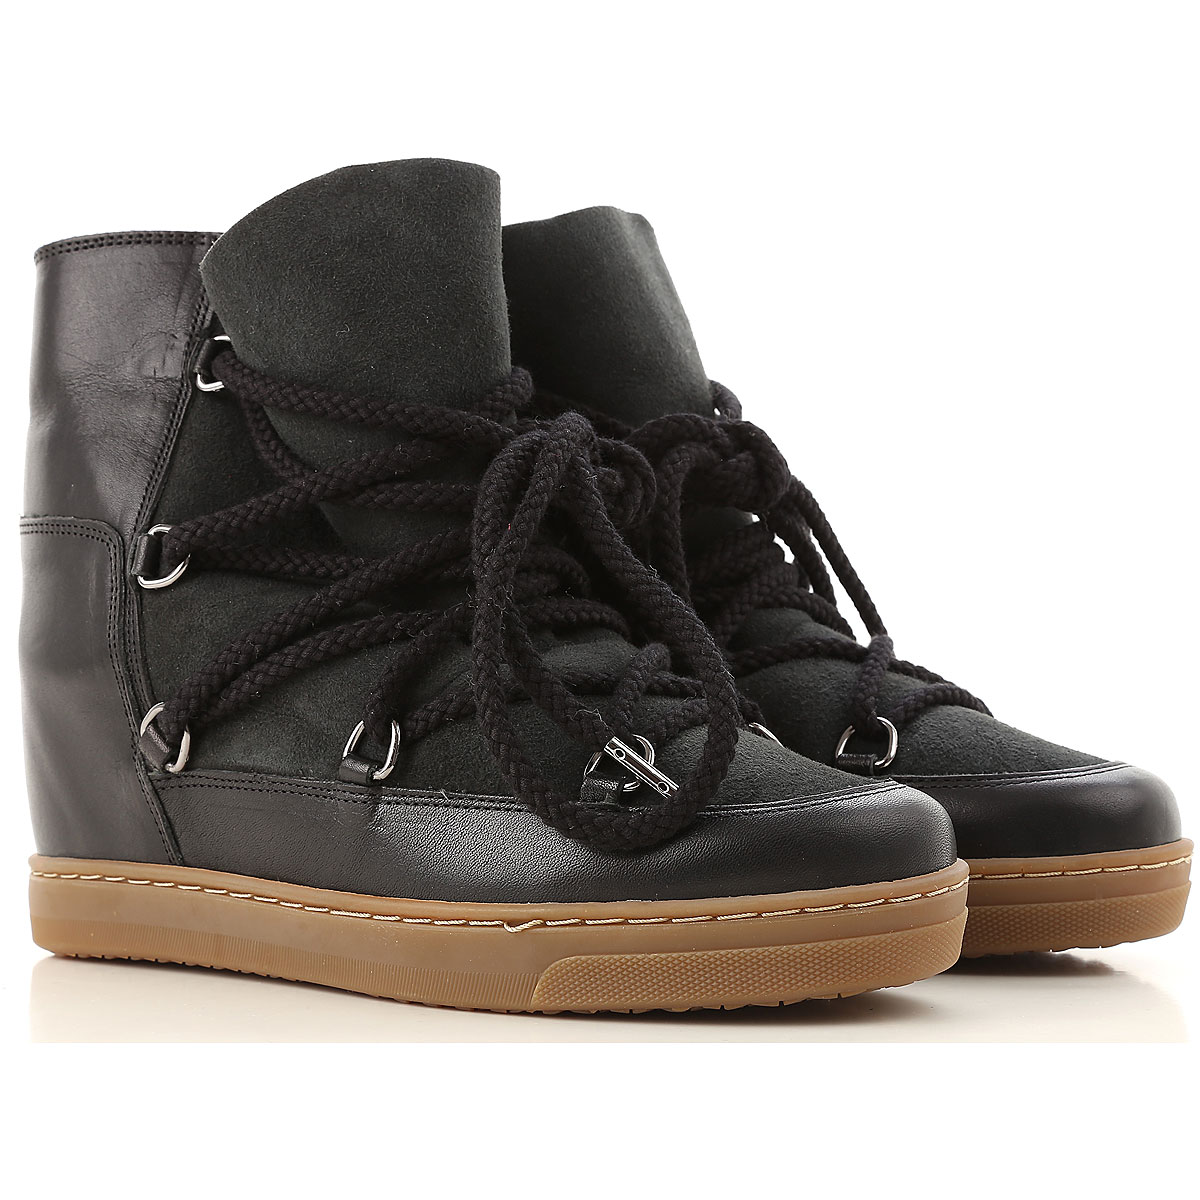 Image of Isabel Marant Boots for Women, Booties, Black, Leather, 2017, 10 11 5 6 7 8 9